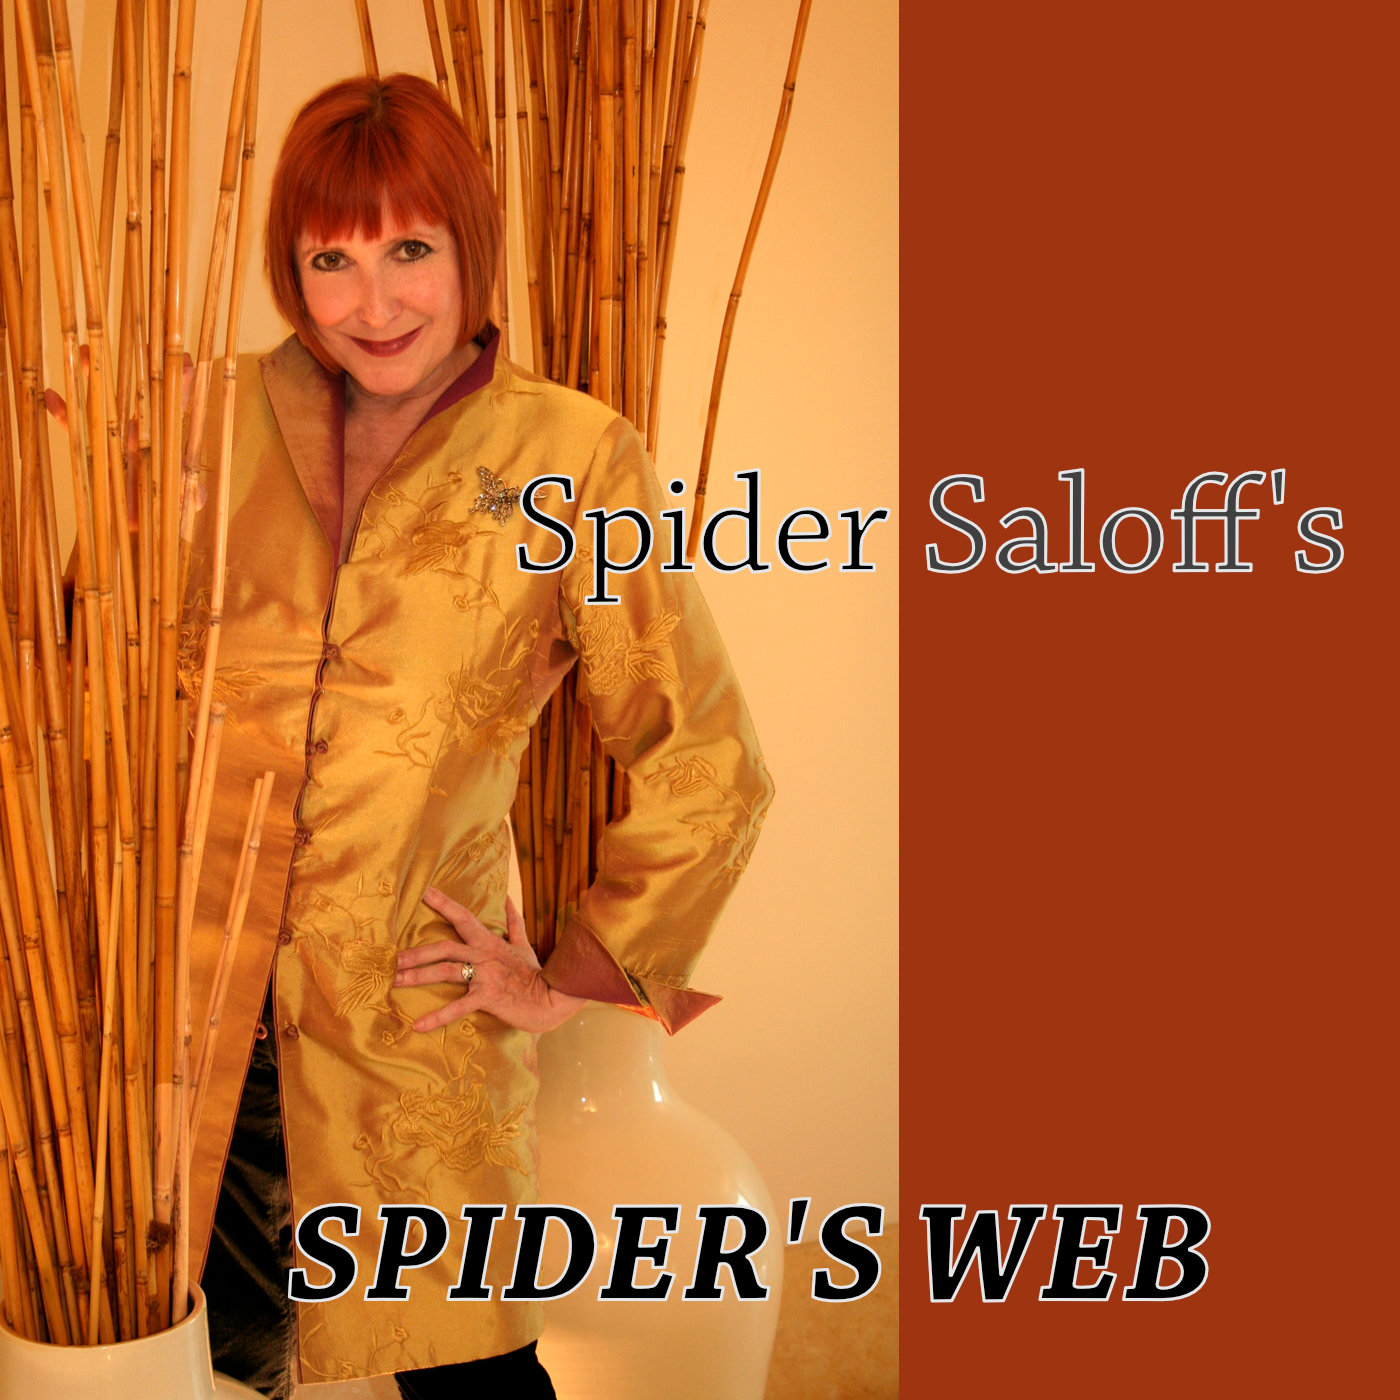 Spider Saloff's Spider's Web